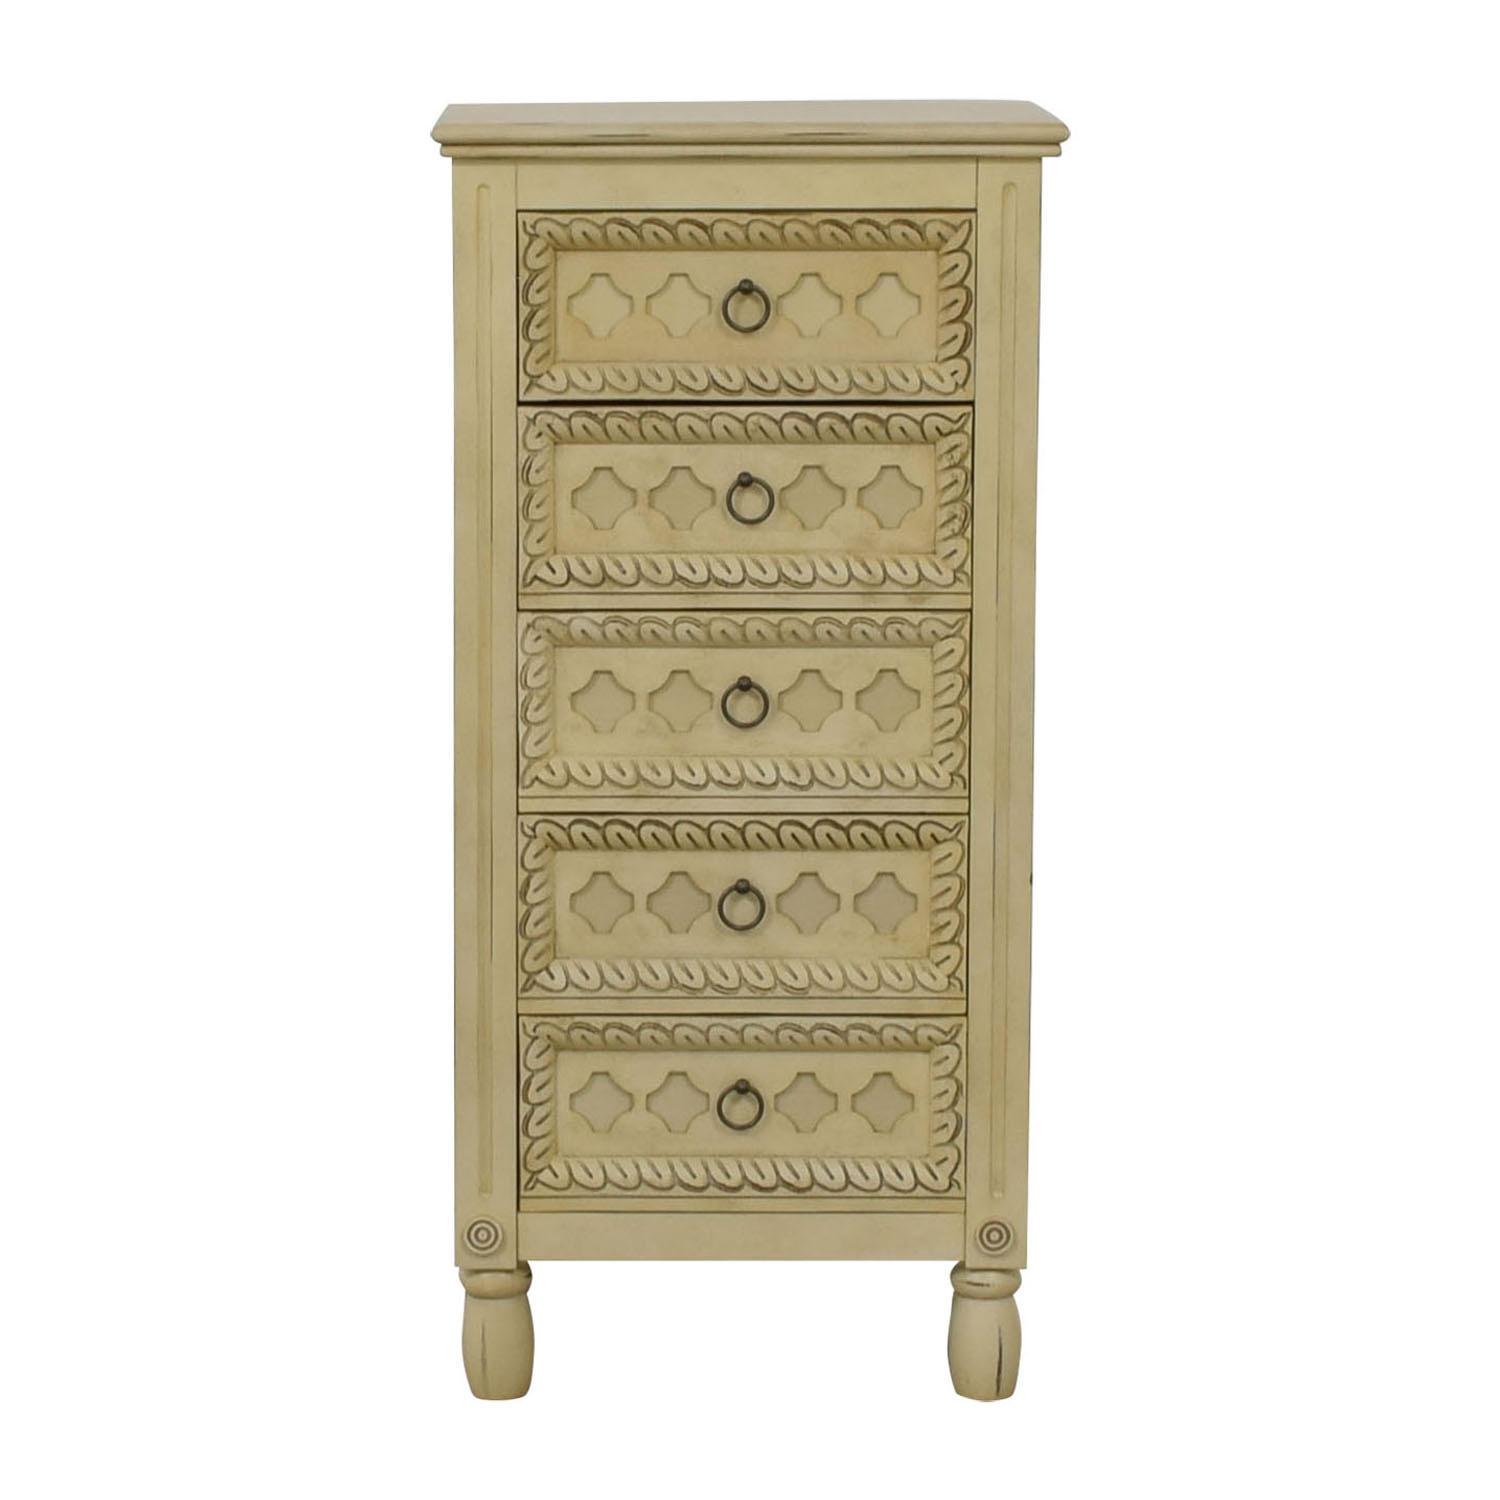 Wayfair Wayfair White Jewelry Armoire dimensions